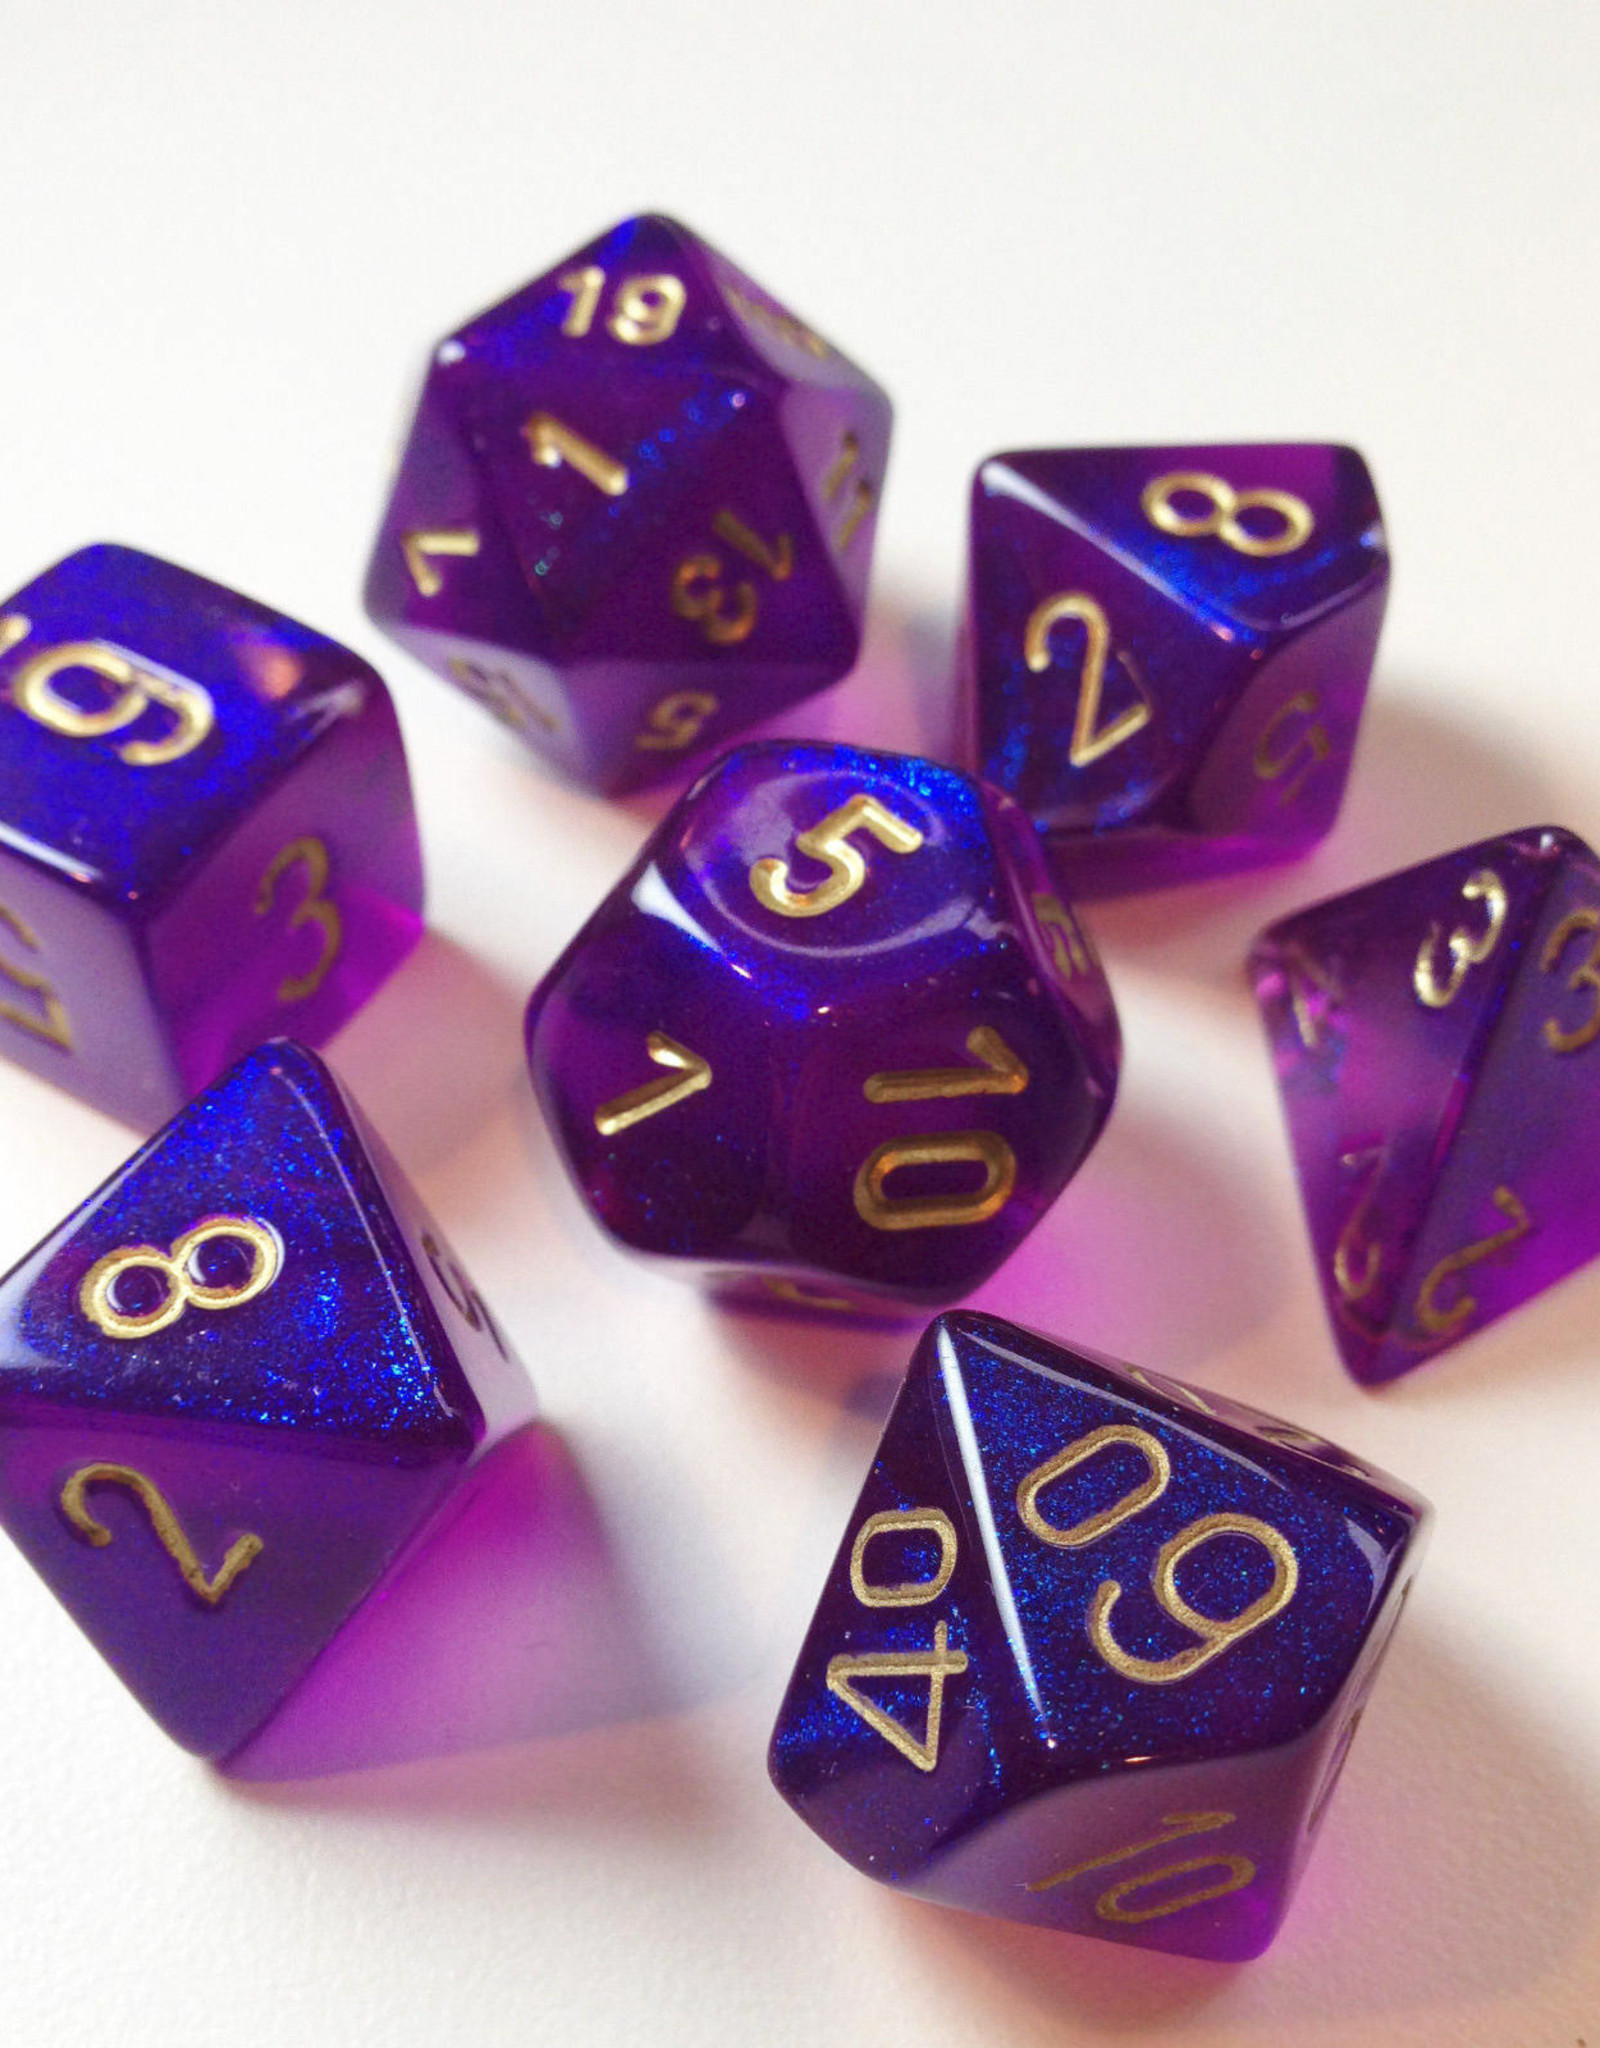 Chessex Chessex 7-Die set Borealis - Royal Purple/Gold